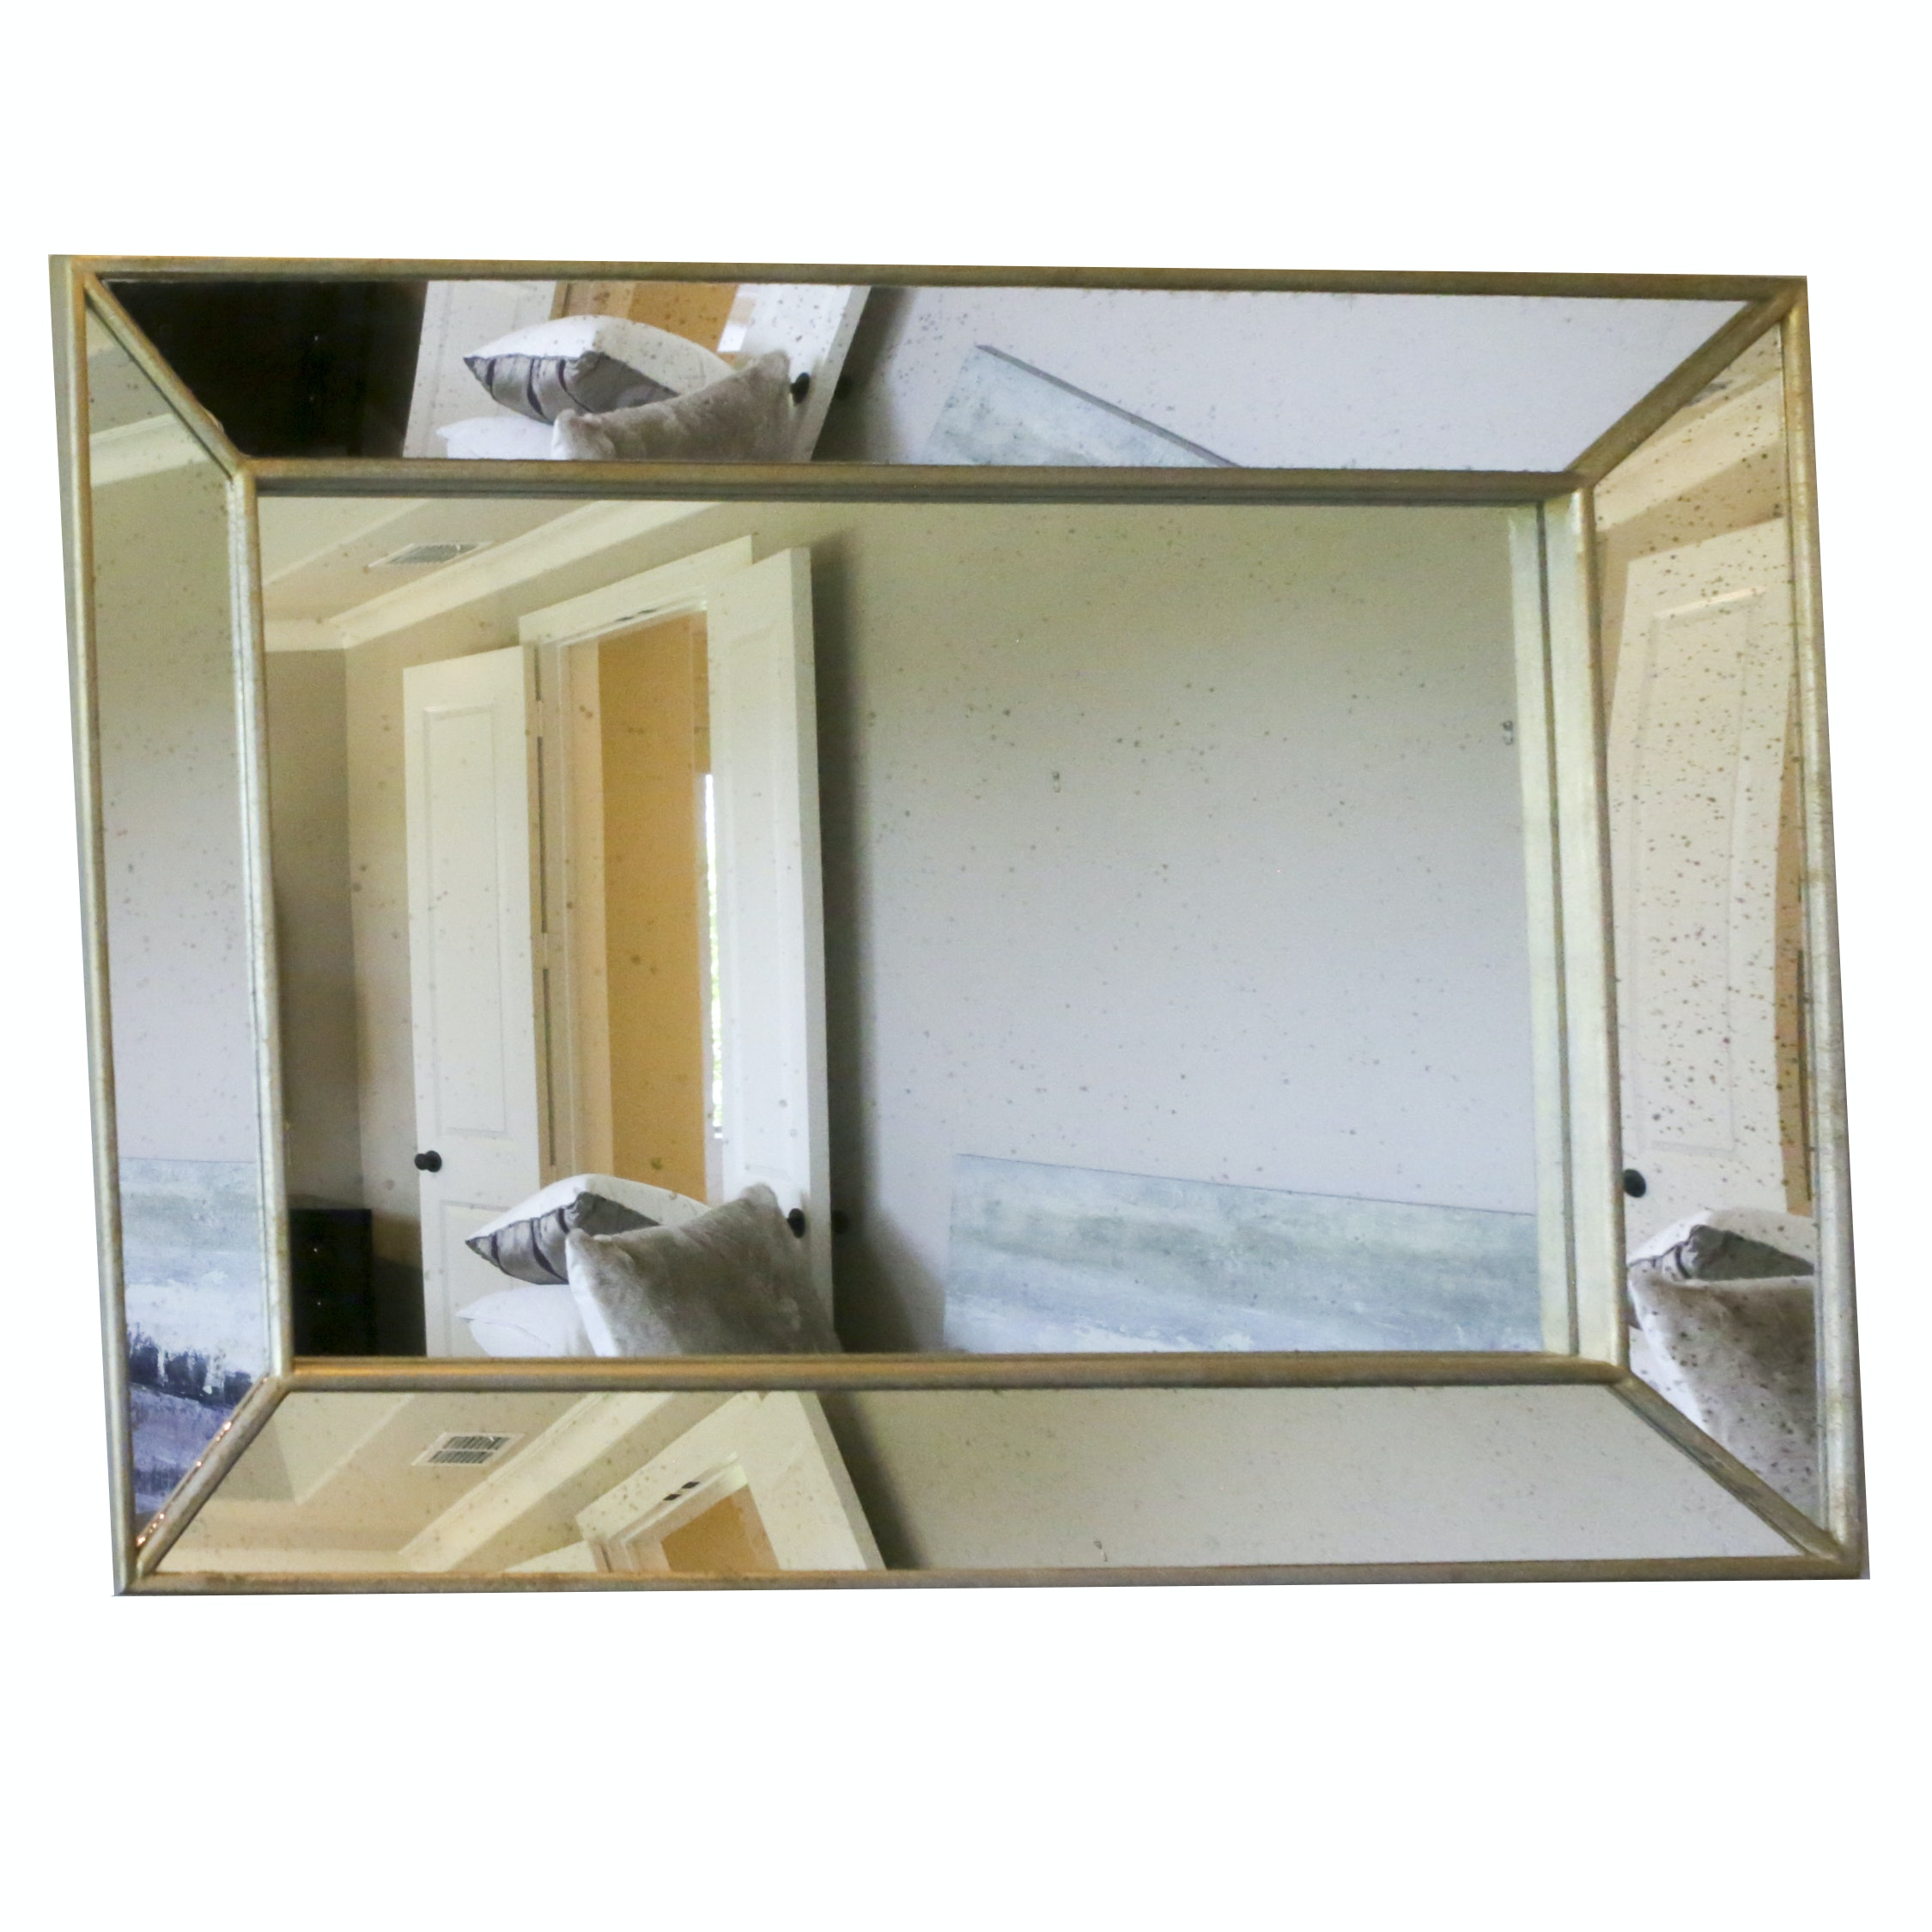 Wall Mirror with Angled Edge Mirror Frame